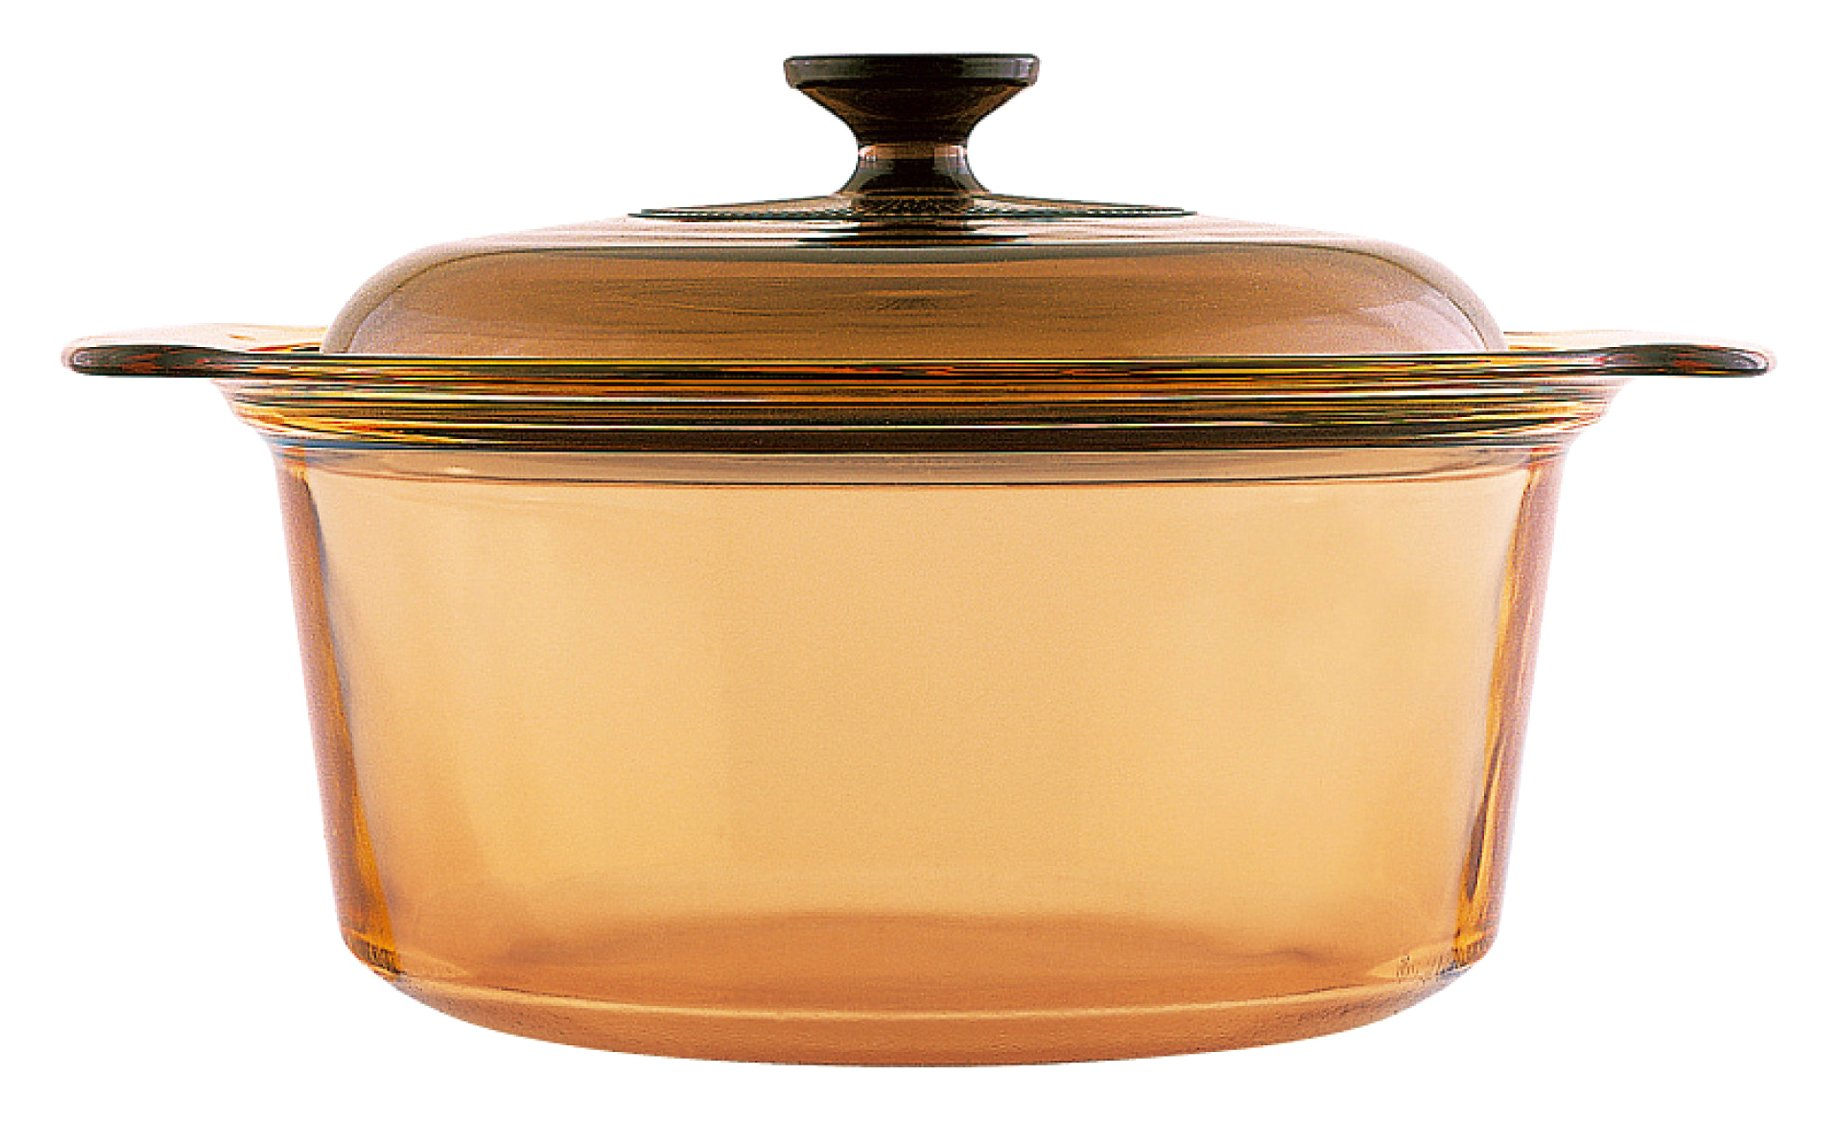 VISIONS 5 Litre Pyroceram Dutch Oven with Glass Cover, Amber, 5L